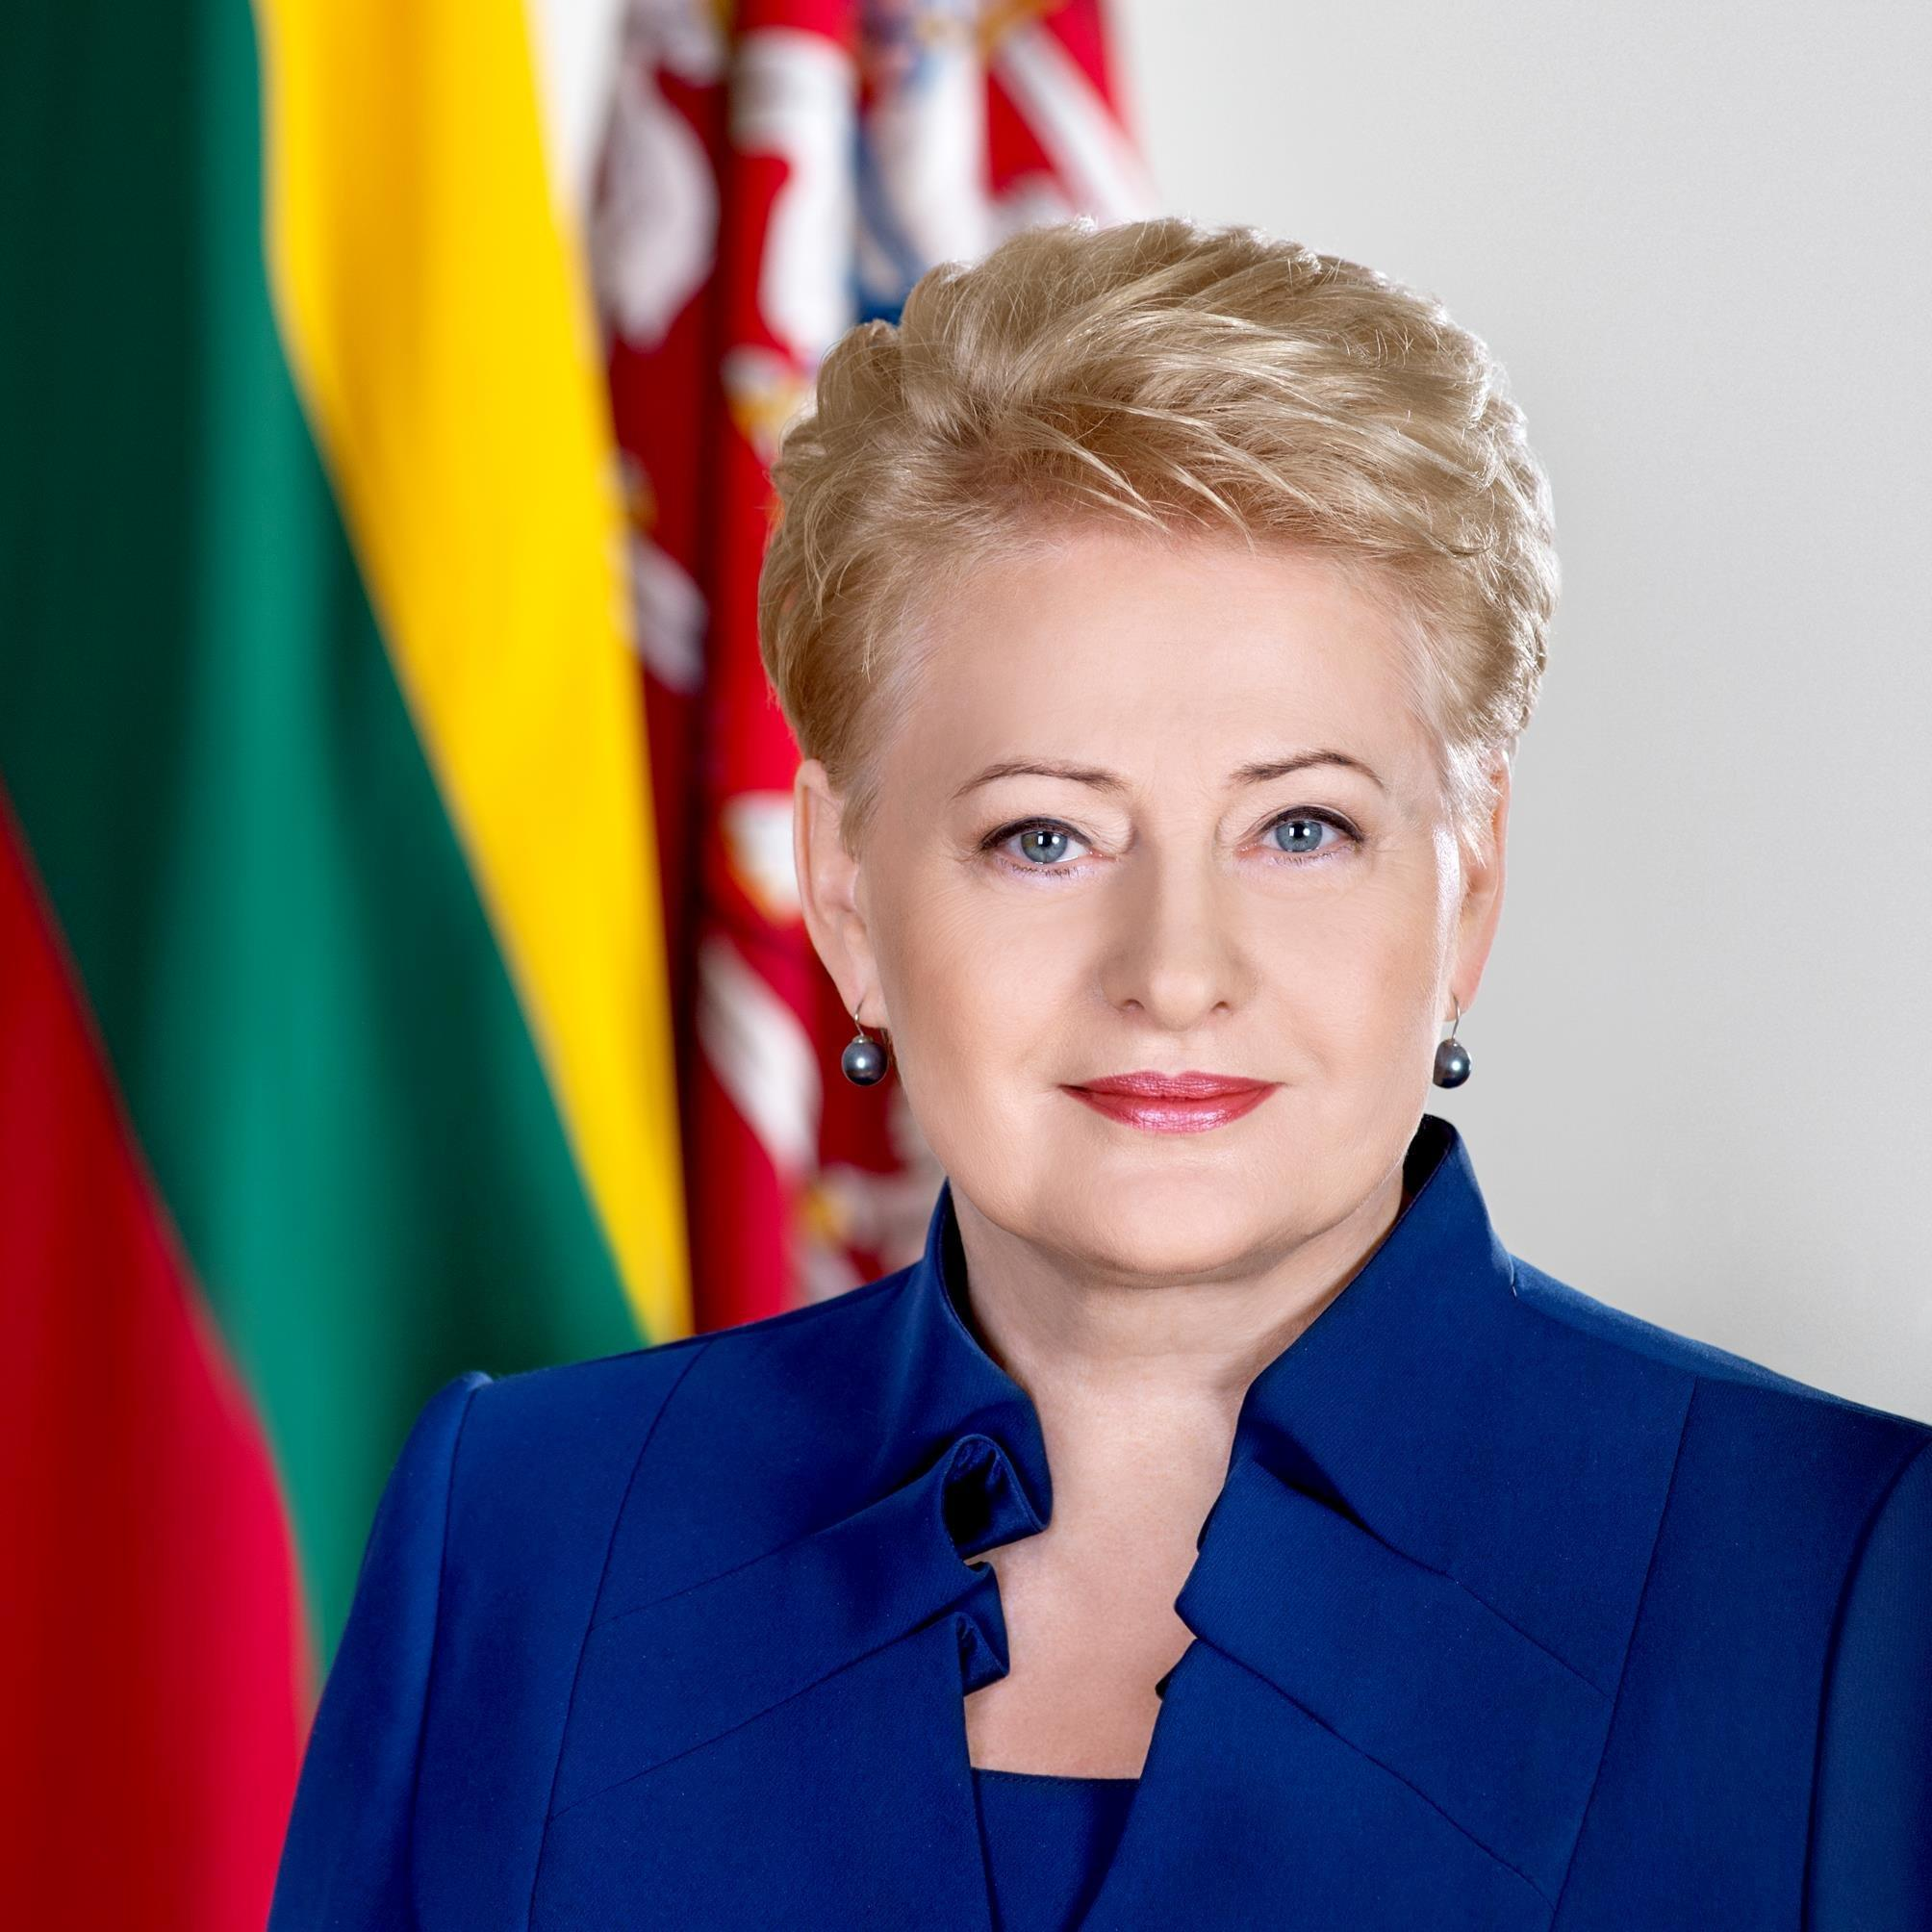 Who is Lithuania's president?